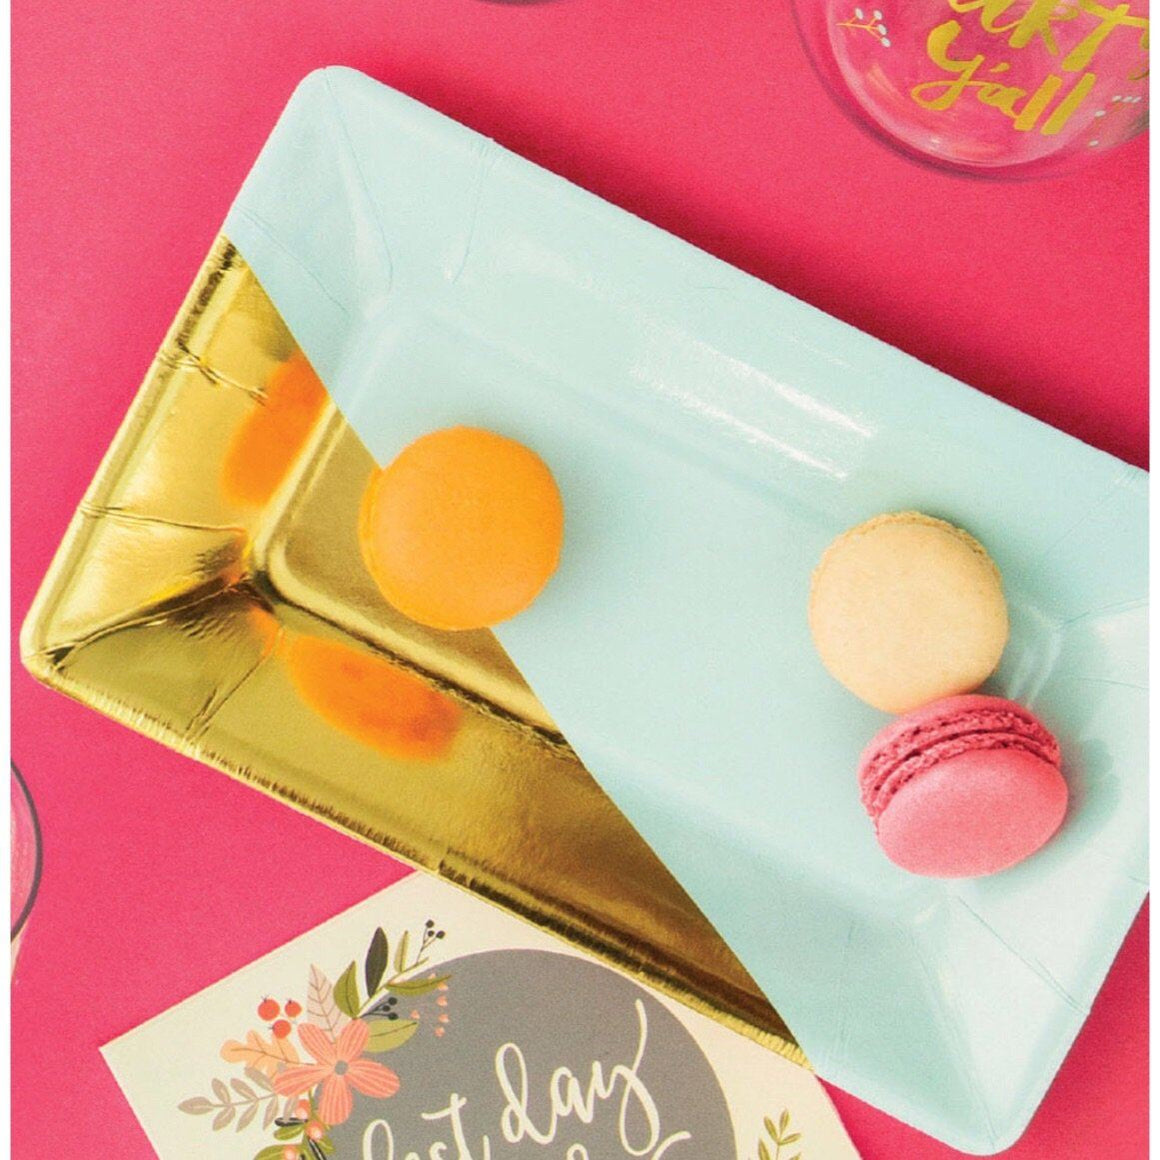 PLATES - SMALL RECTANGULAR MINT GOLD, PLATES, ELISE - CREATIVE CONVERTING - Bon + Co. Party Studio